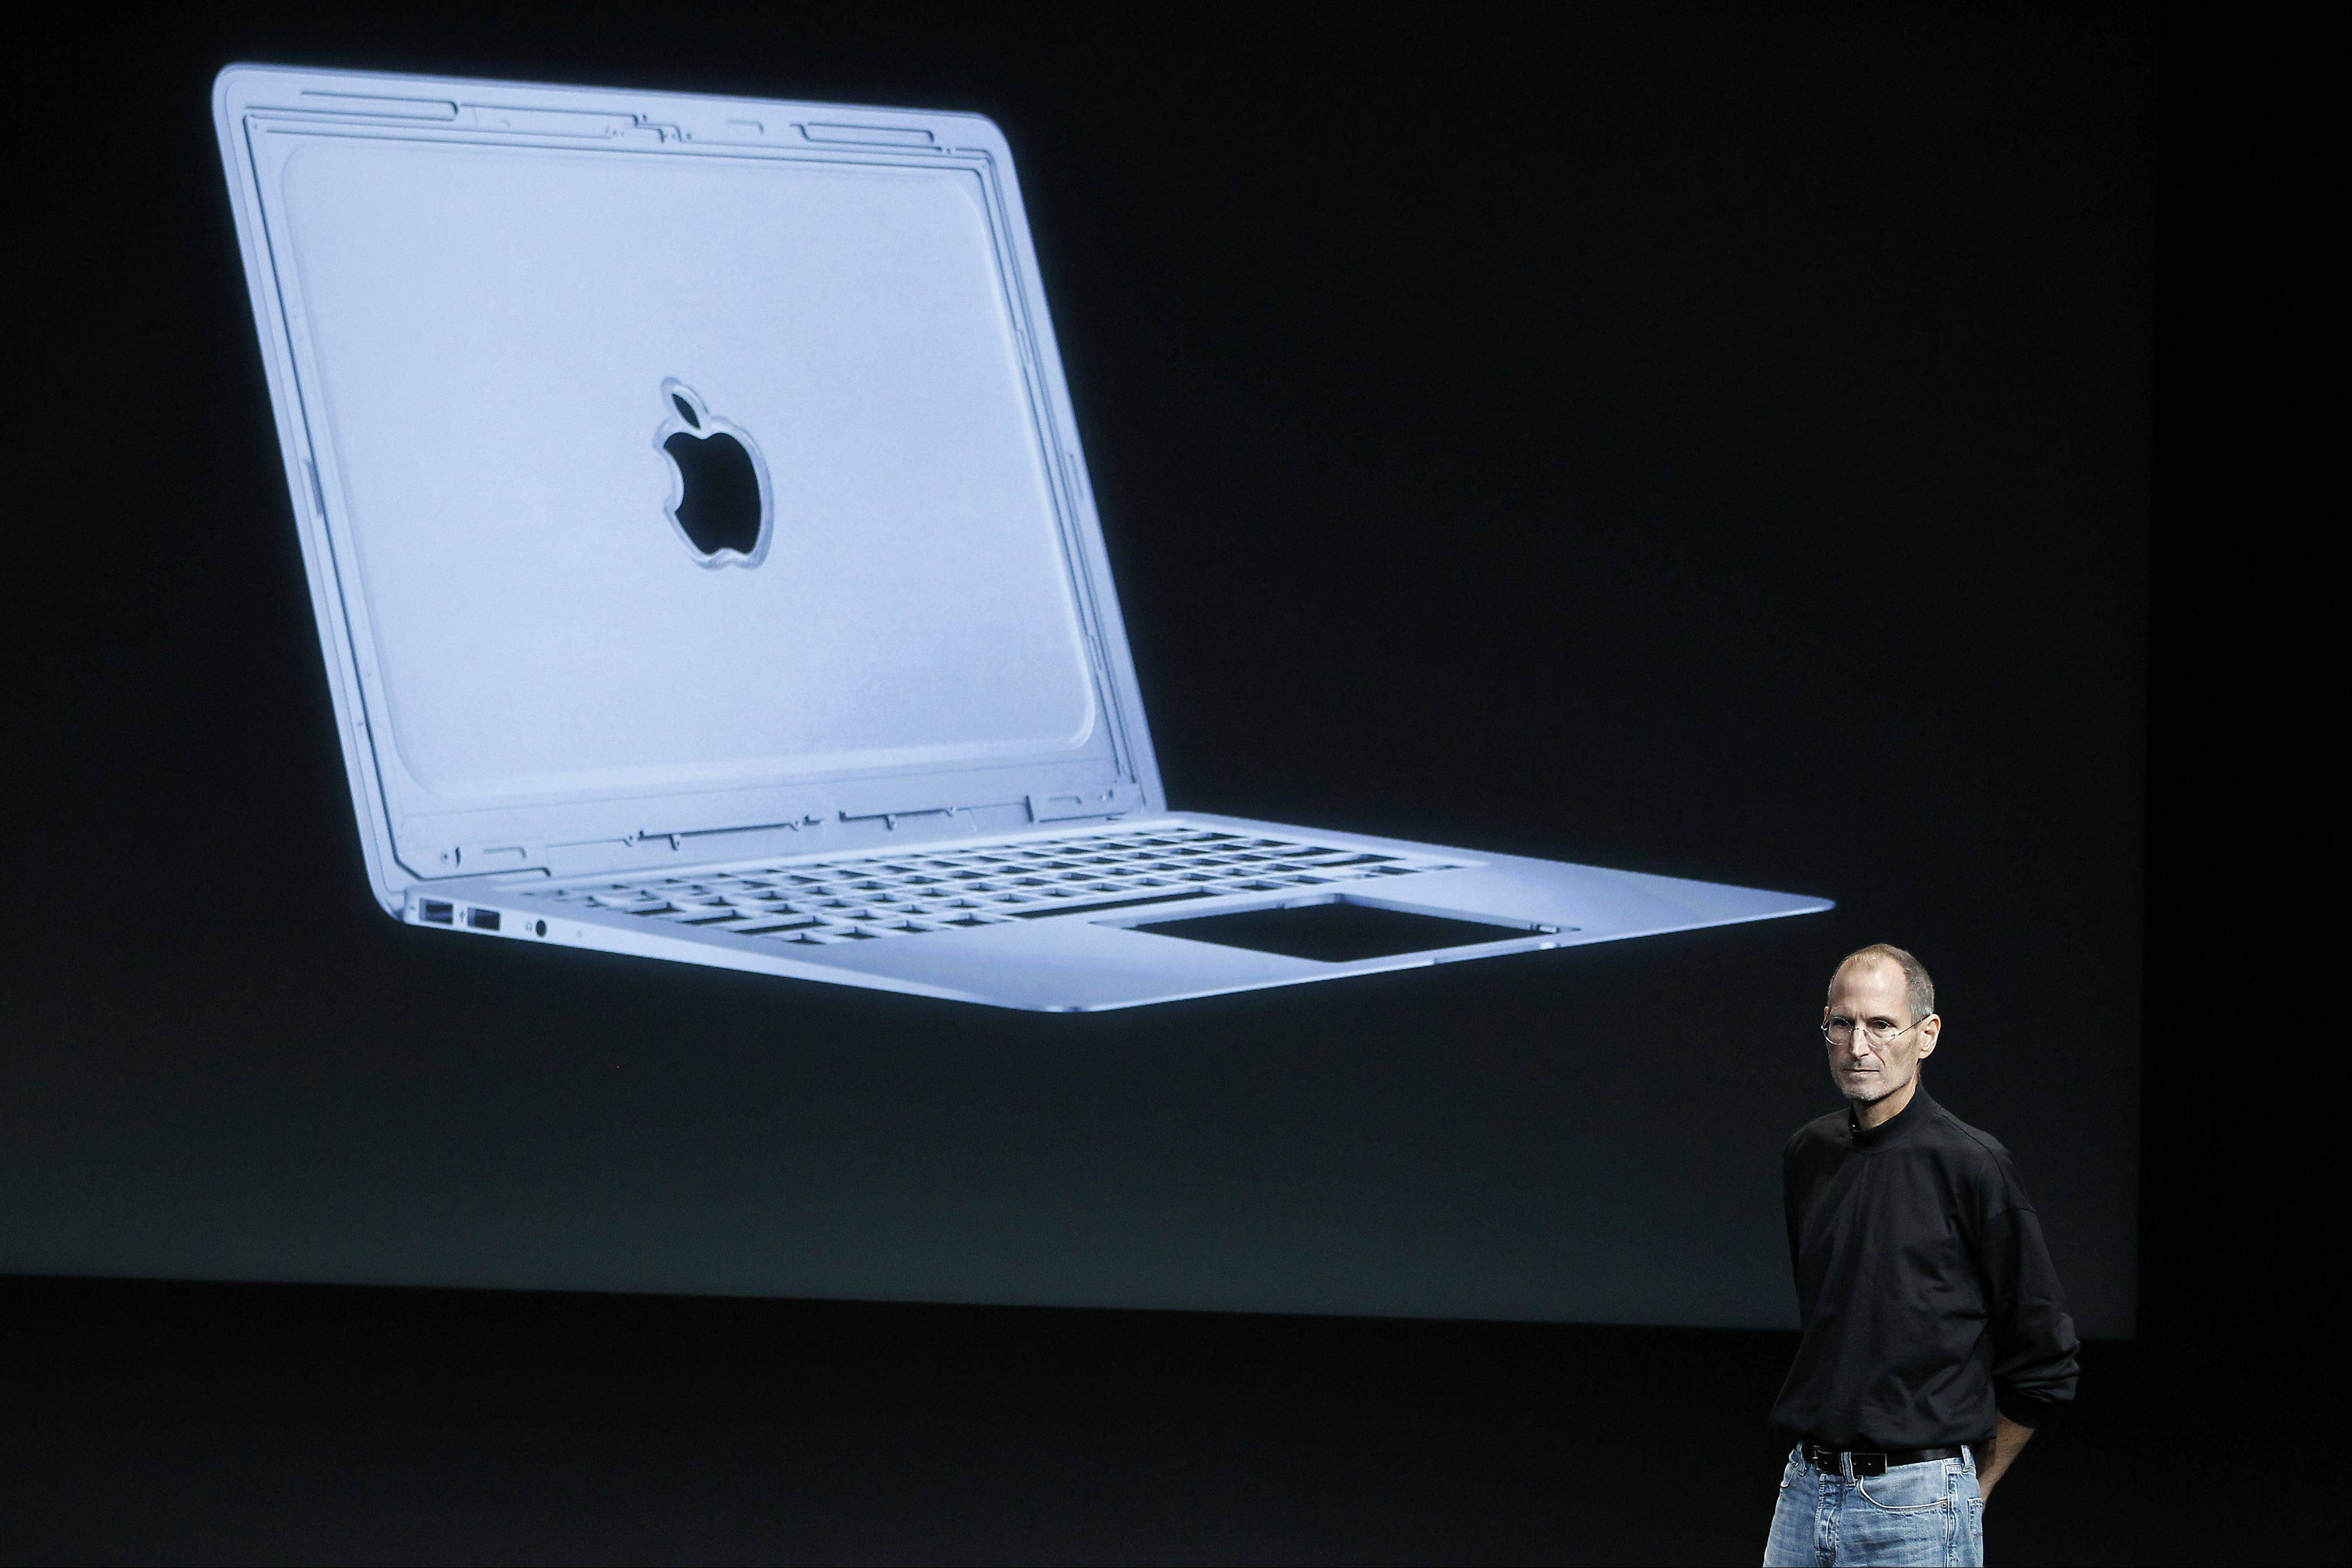 Apple's new 13-inch MacBook Air promises 12 hours between charges and lots of new Windows-based laptops are offering similarly amazing stats. Why are laptops batteries getting so much better? The nominal reason is the new Intel processor Haswell -- the dramatic result of Intel's yearslong effort to alter its core assumptions about the future of technology.